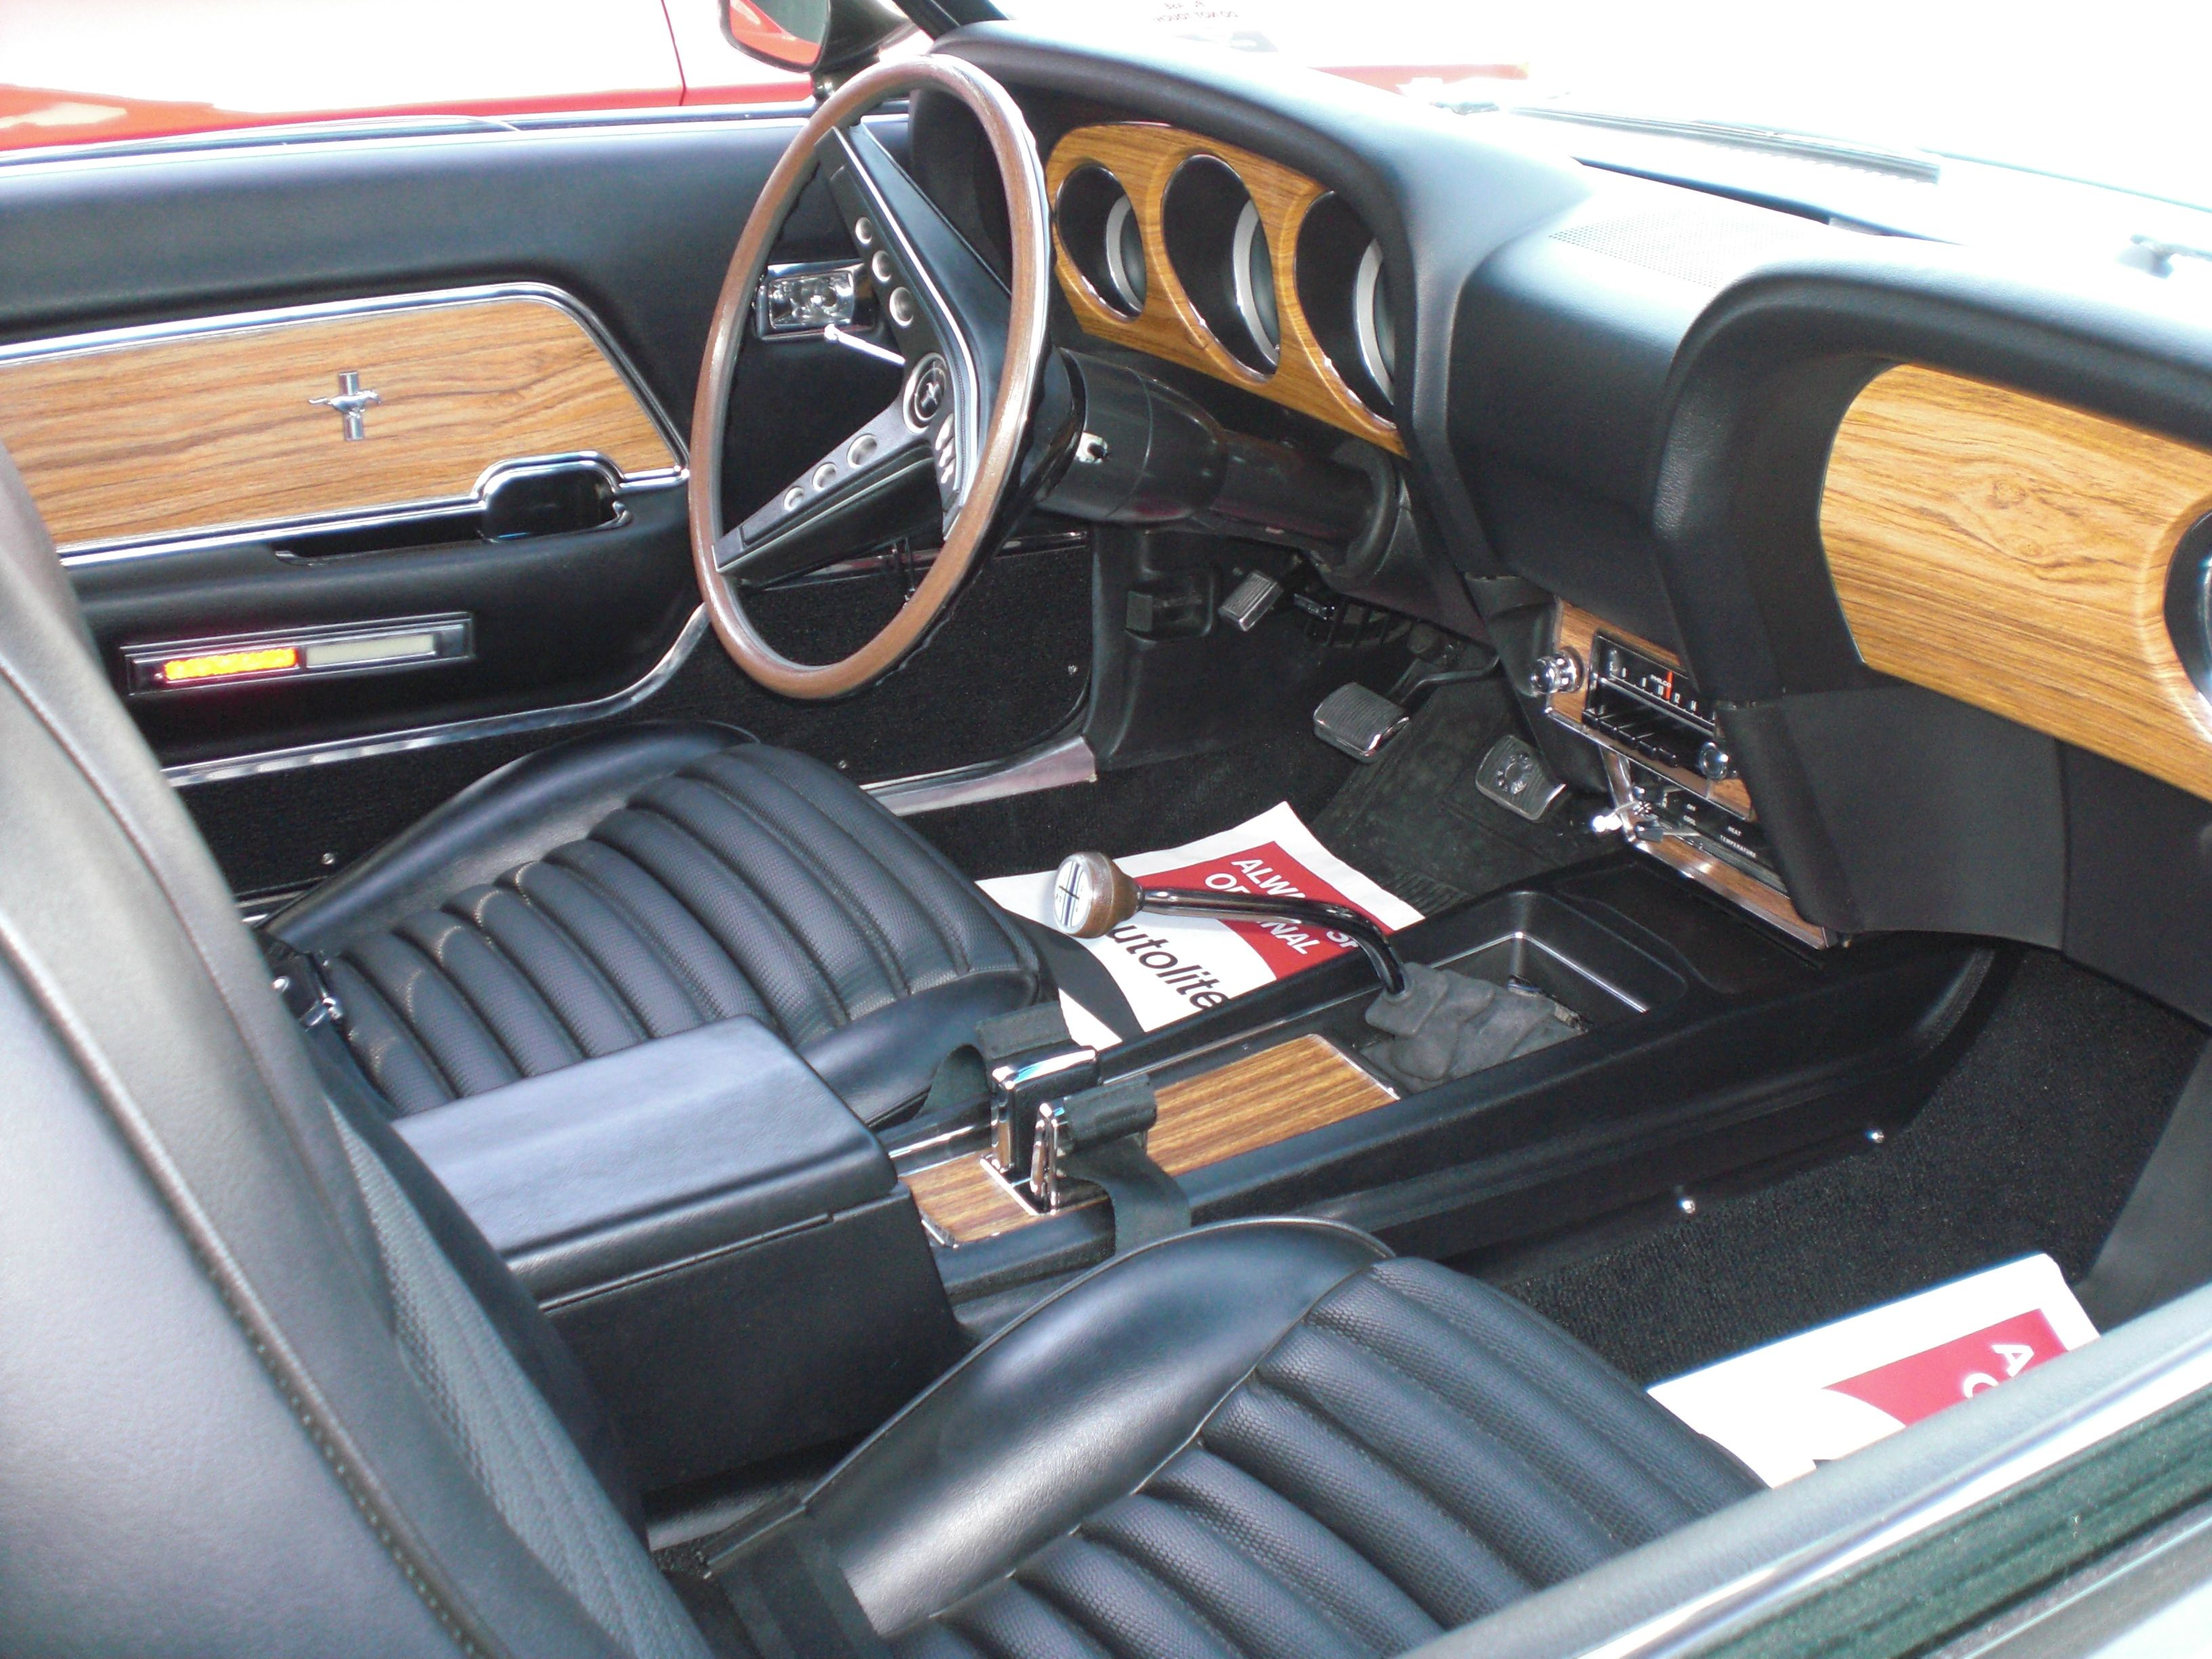 1969 Mach 1 Interior With Images 1969 Mach 1 Mustang Boss